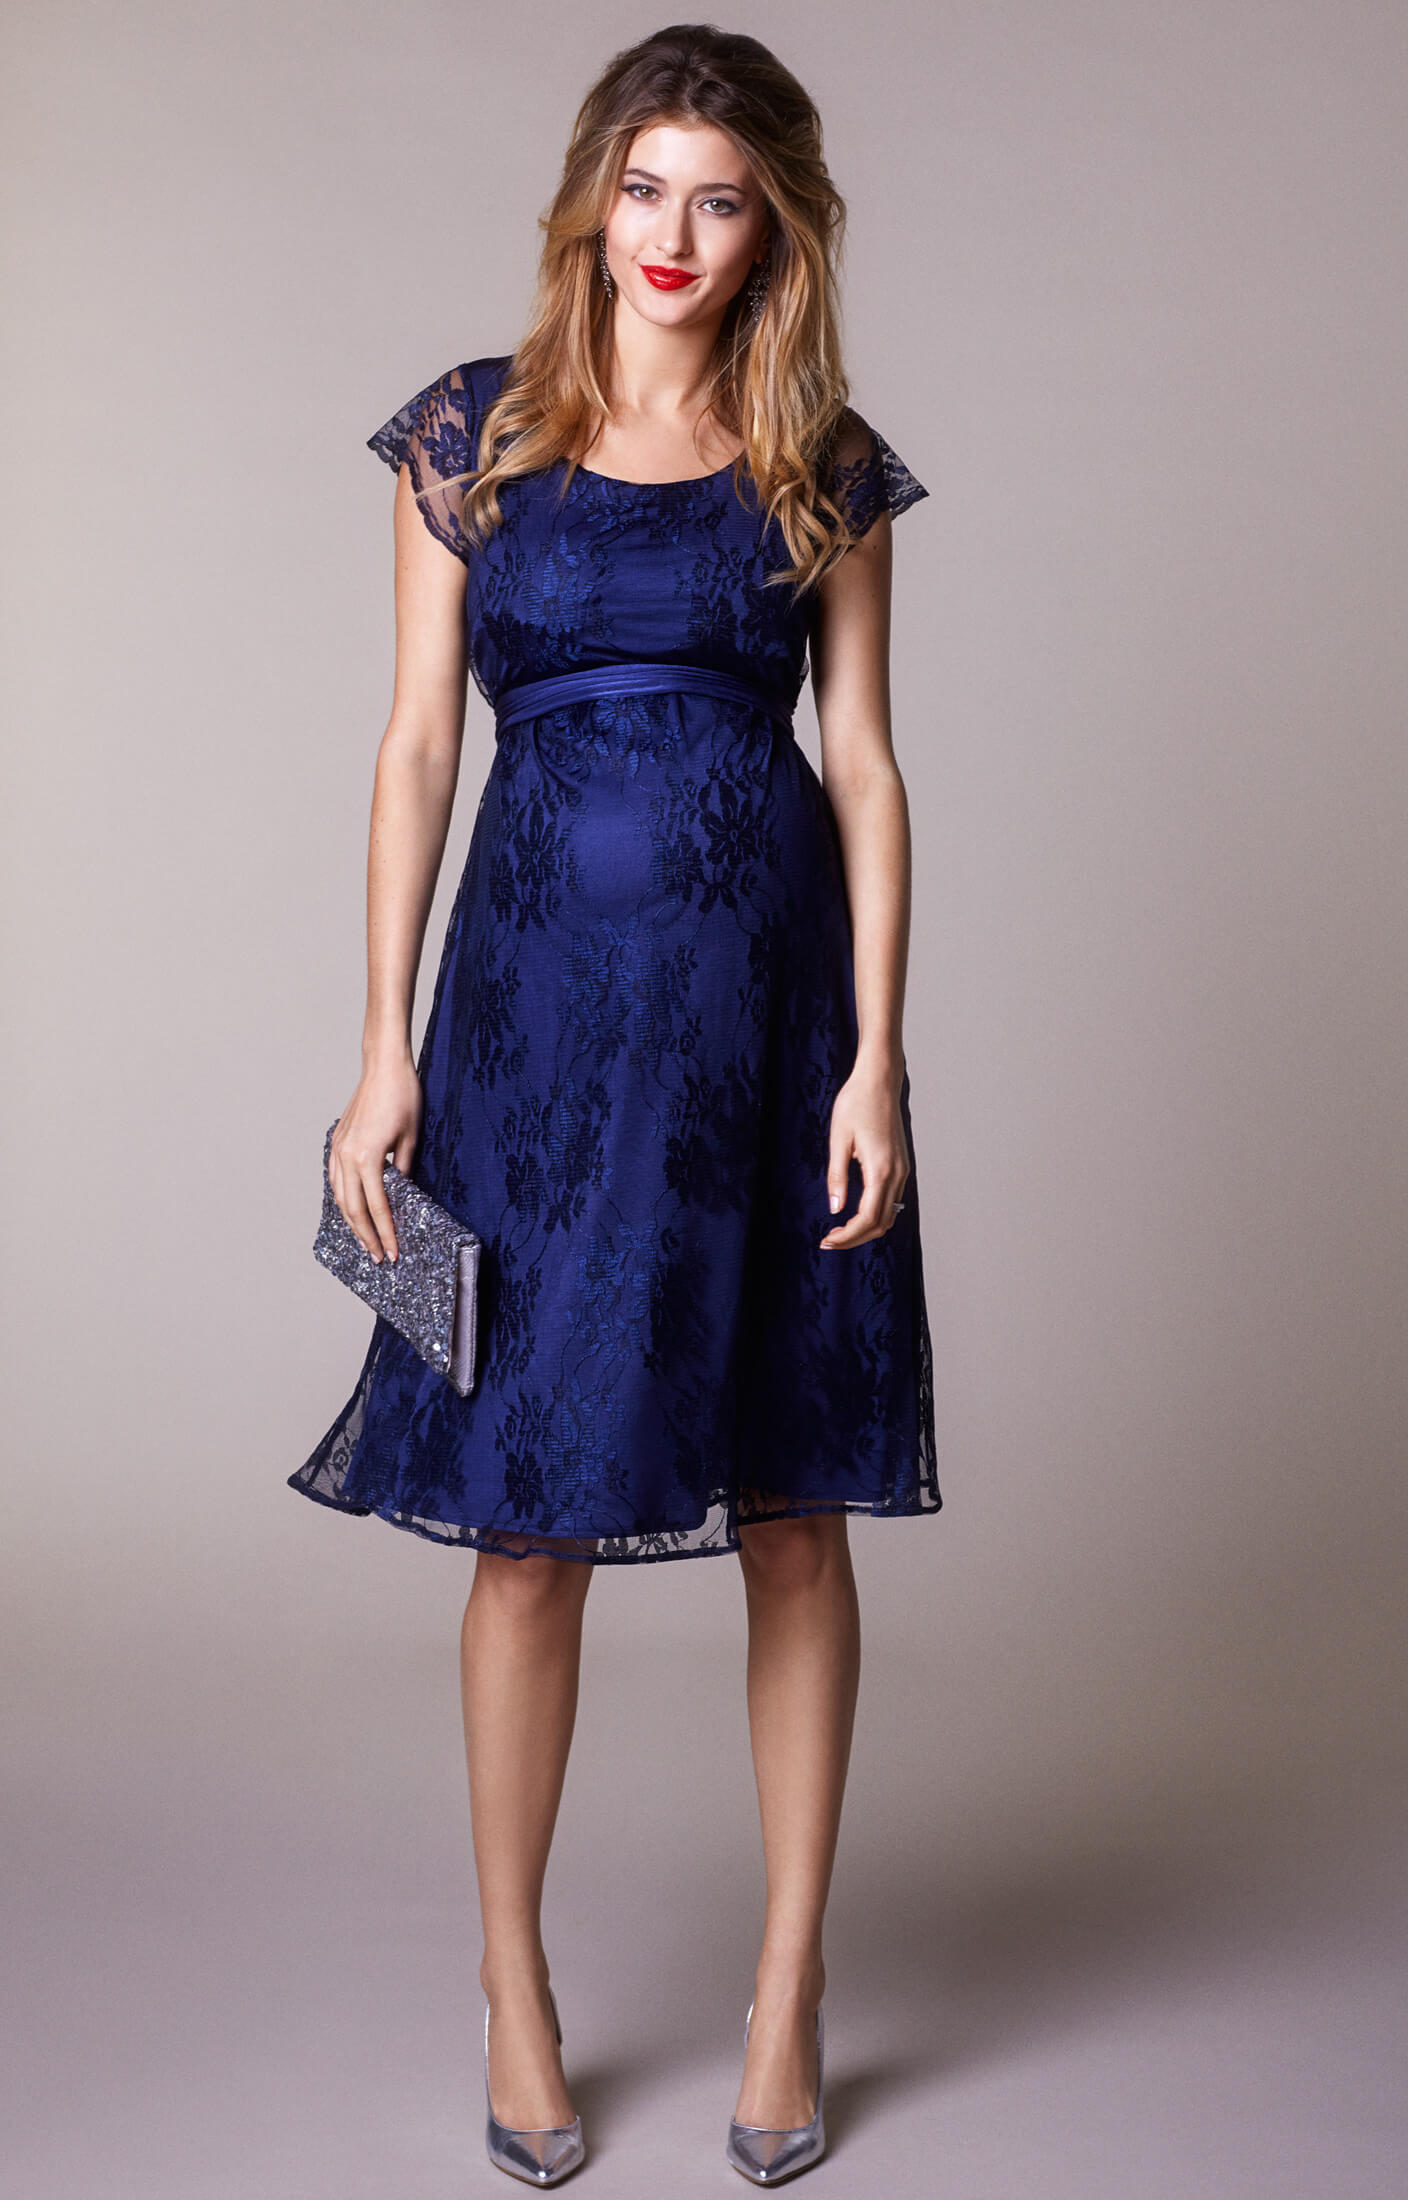 Nursing Dresses For Weddings & Other Special Occasions By Tiffany Rose